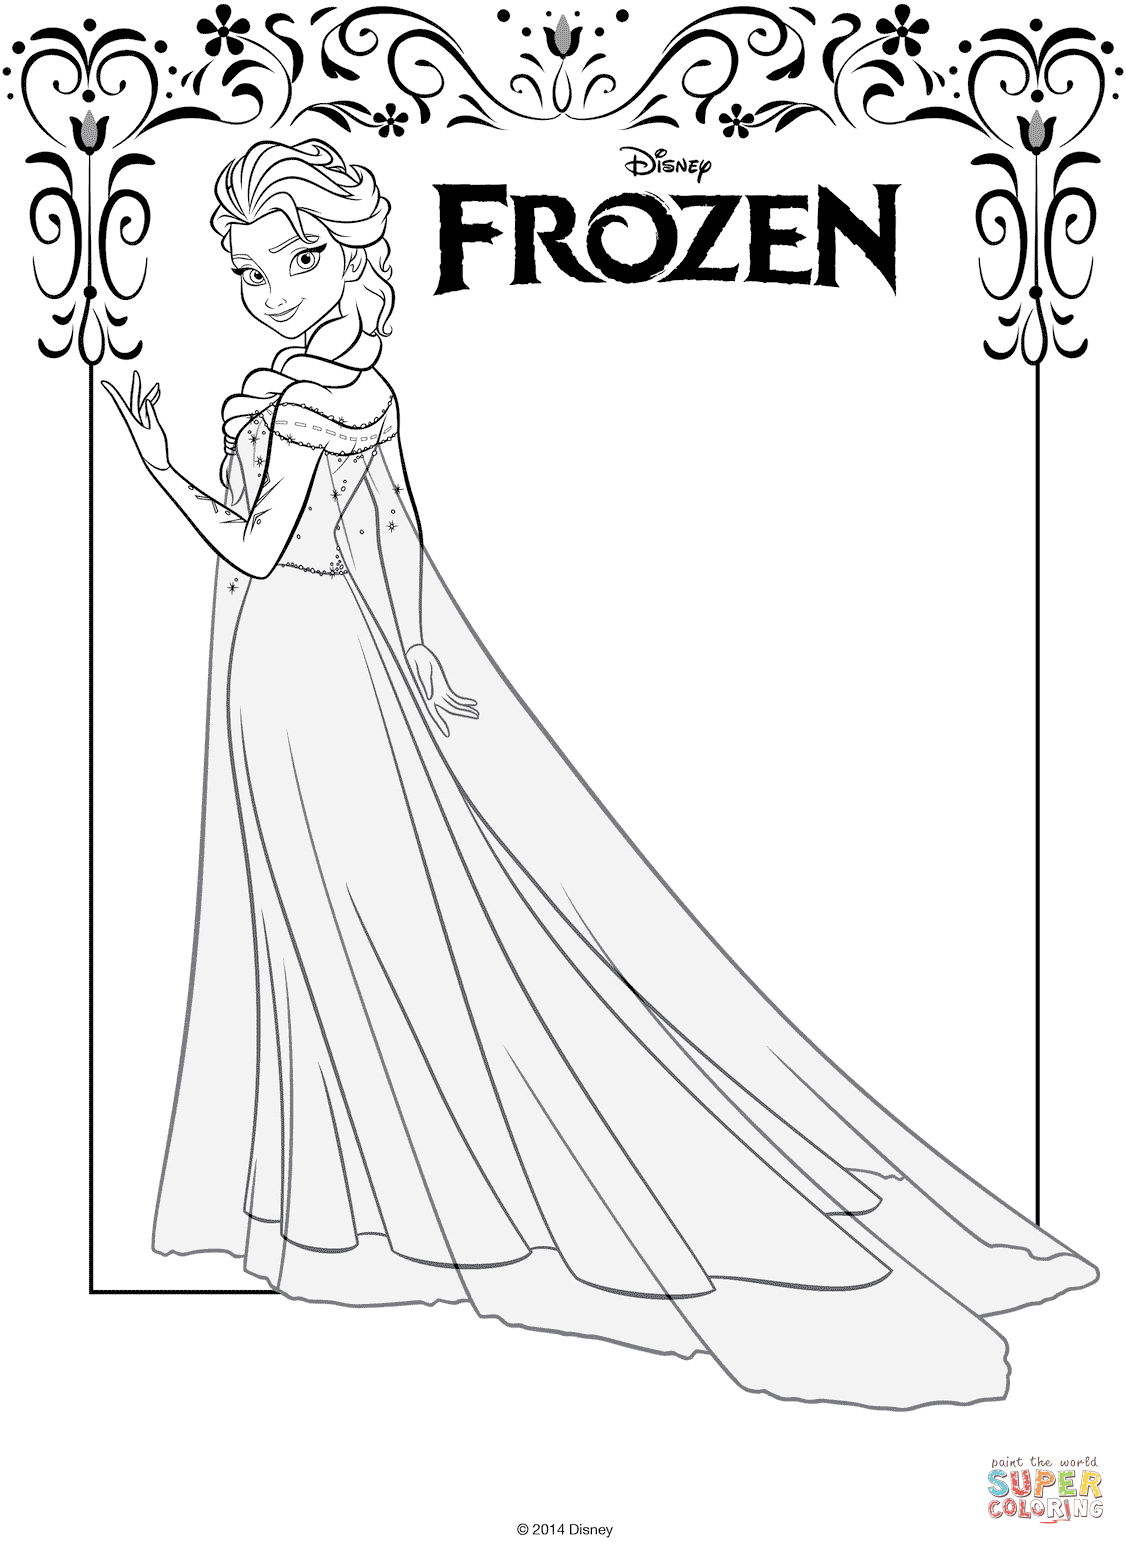 Elsa From Frozen Coloring Page Free Printable Coloring Pages